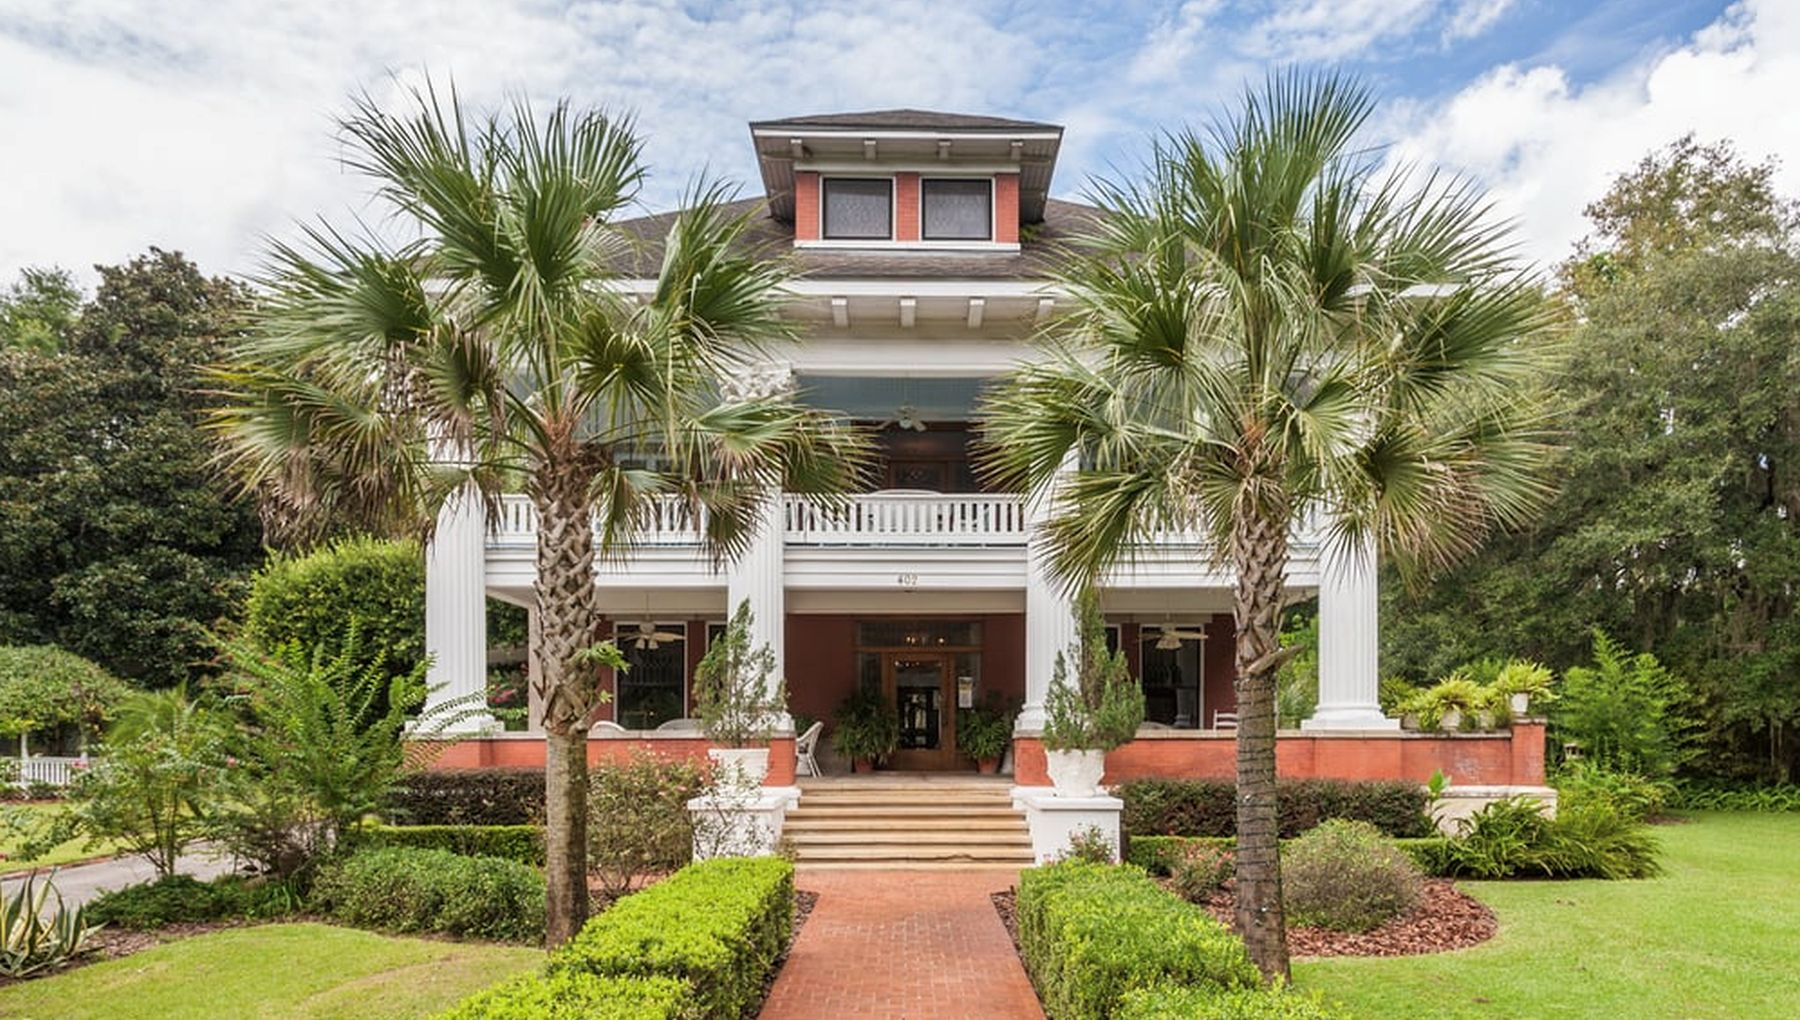 Property For Sale at Micanopy, Florida